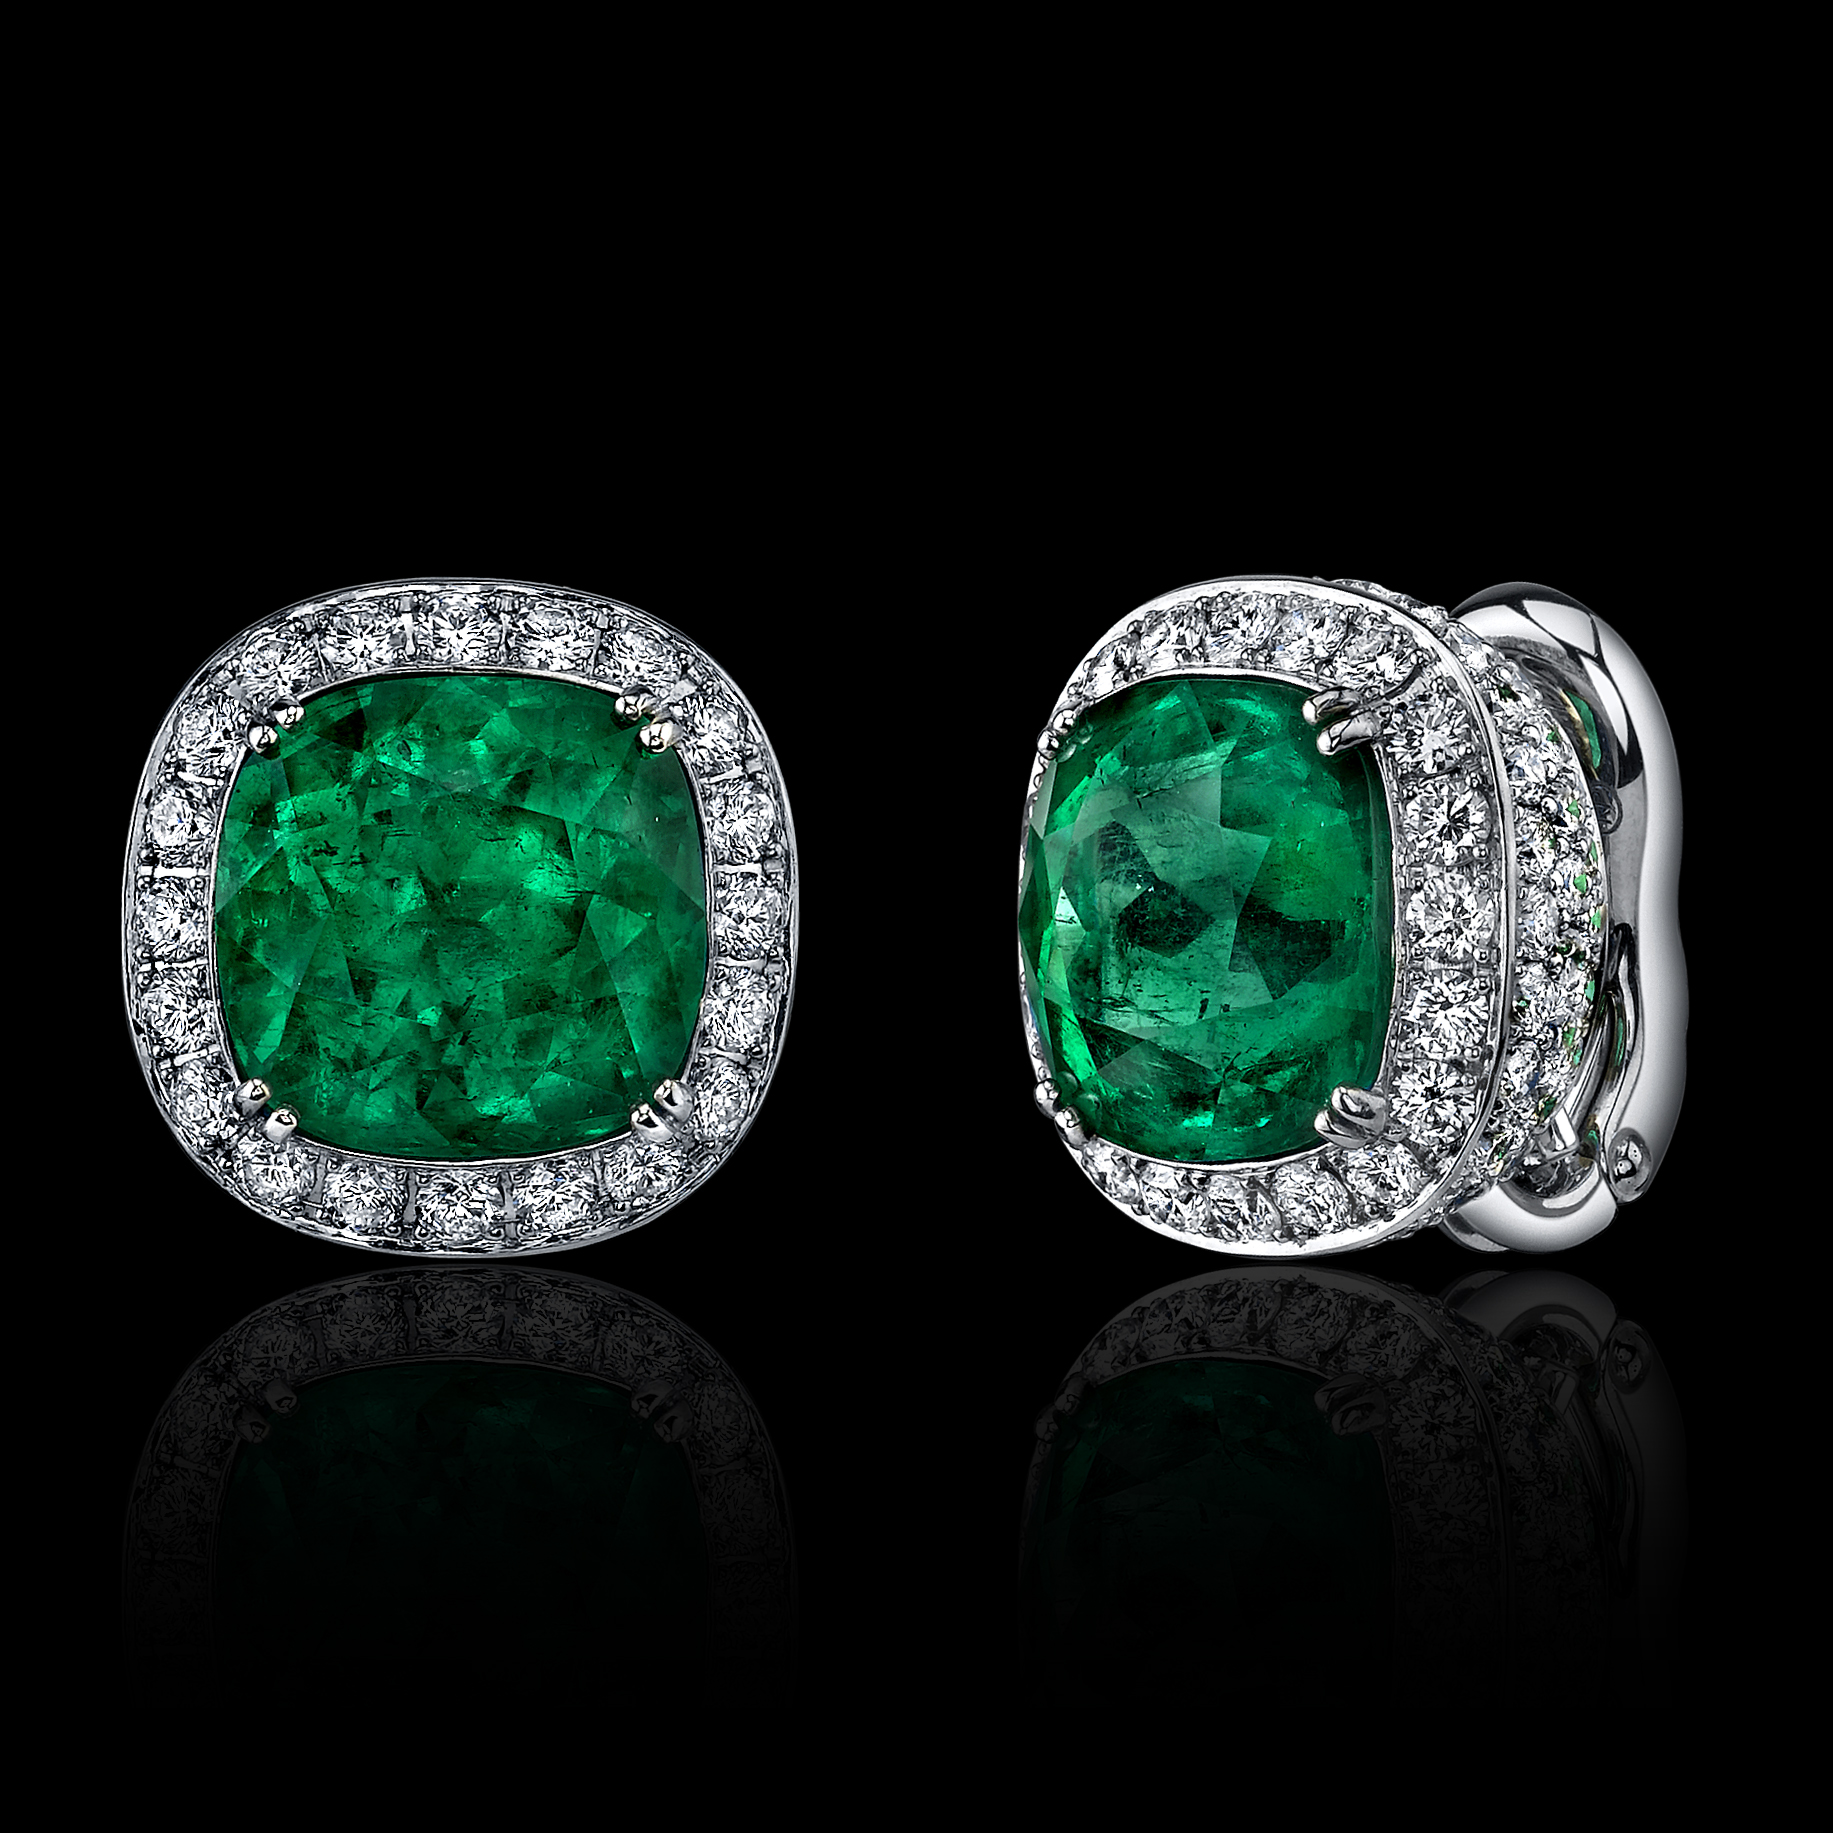 12 95ct Cushion Cut Emerald Diamond Earrings Kantor Gems